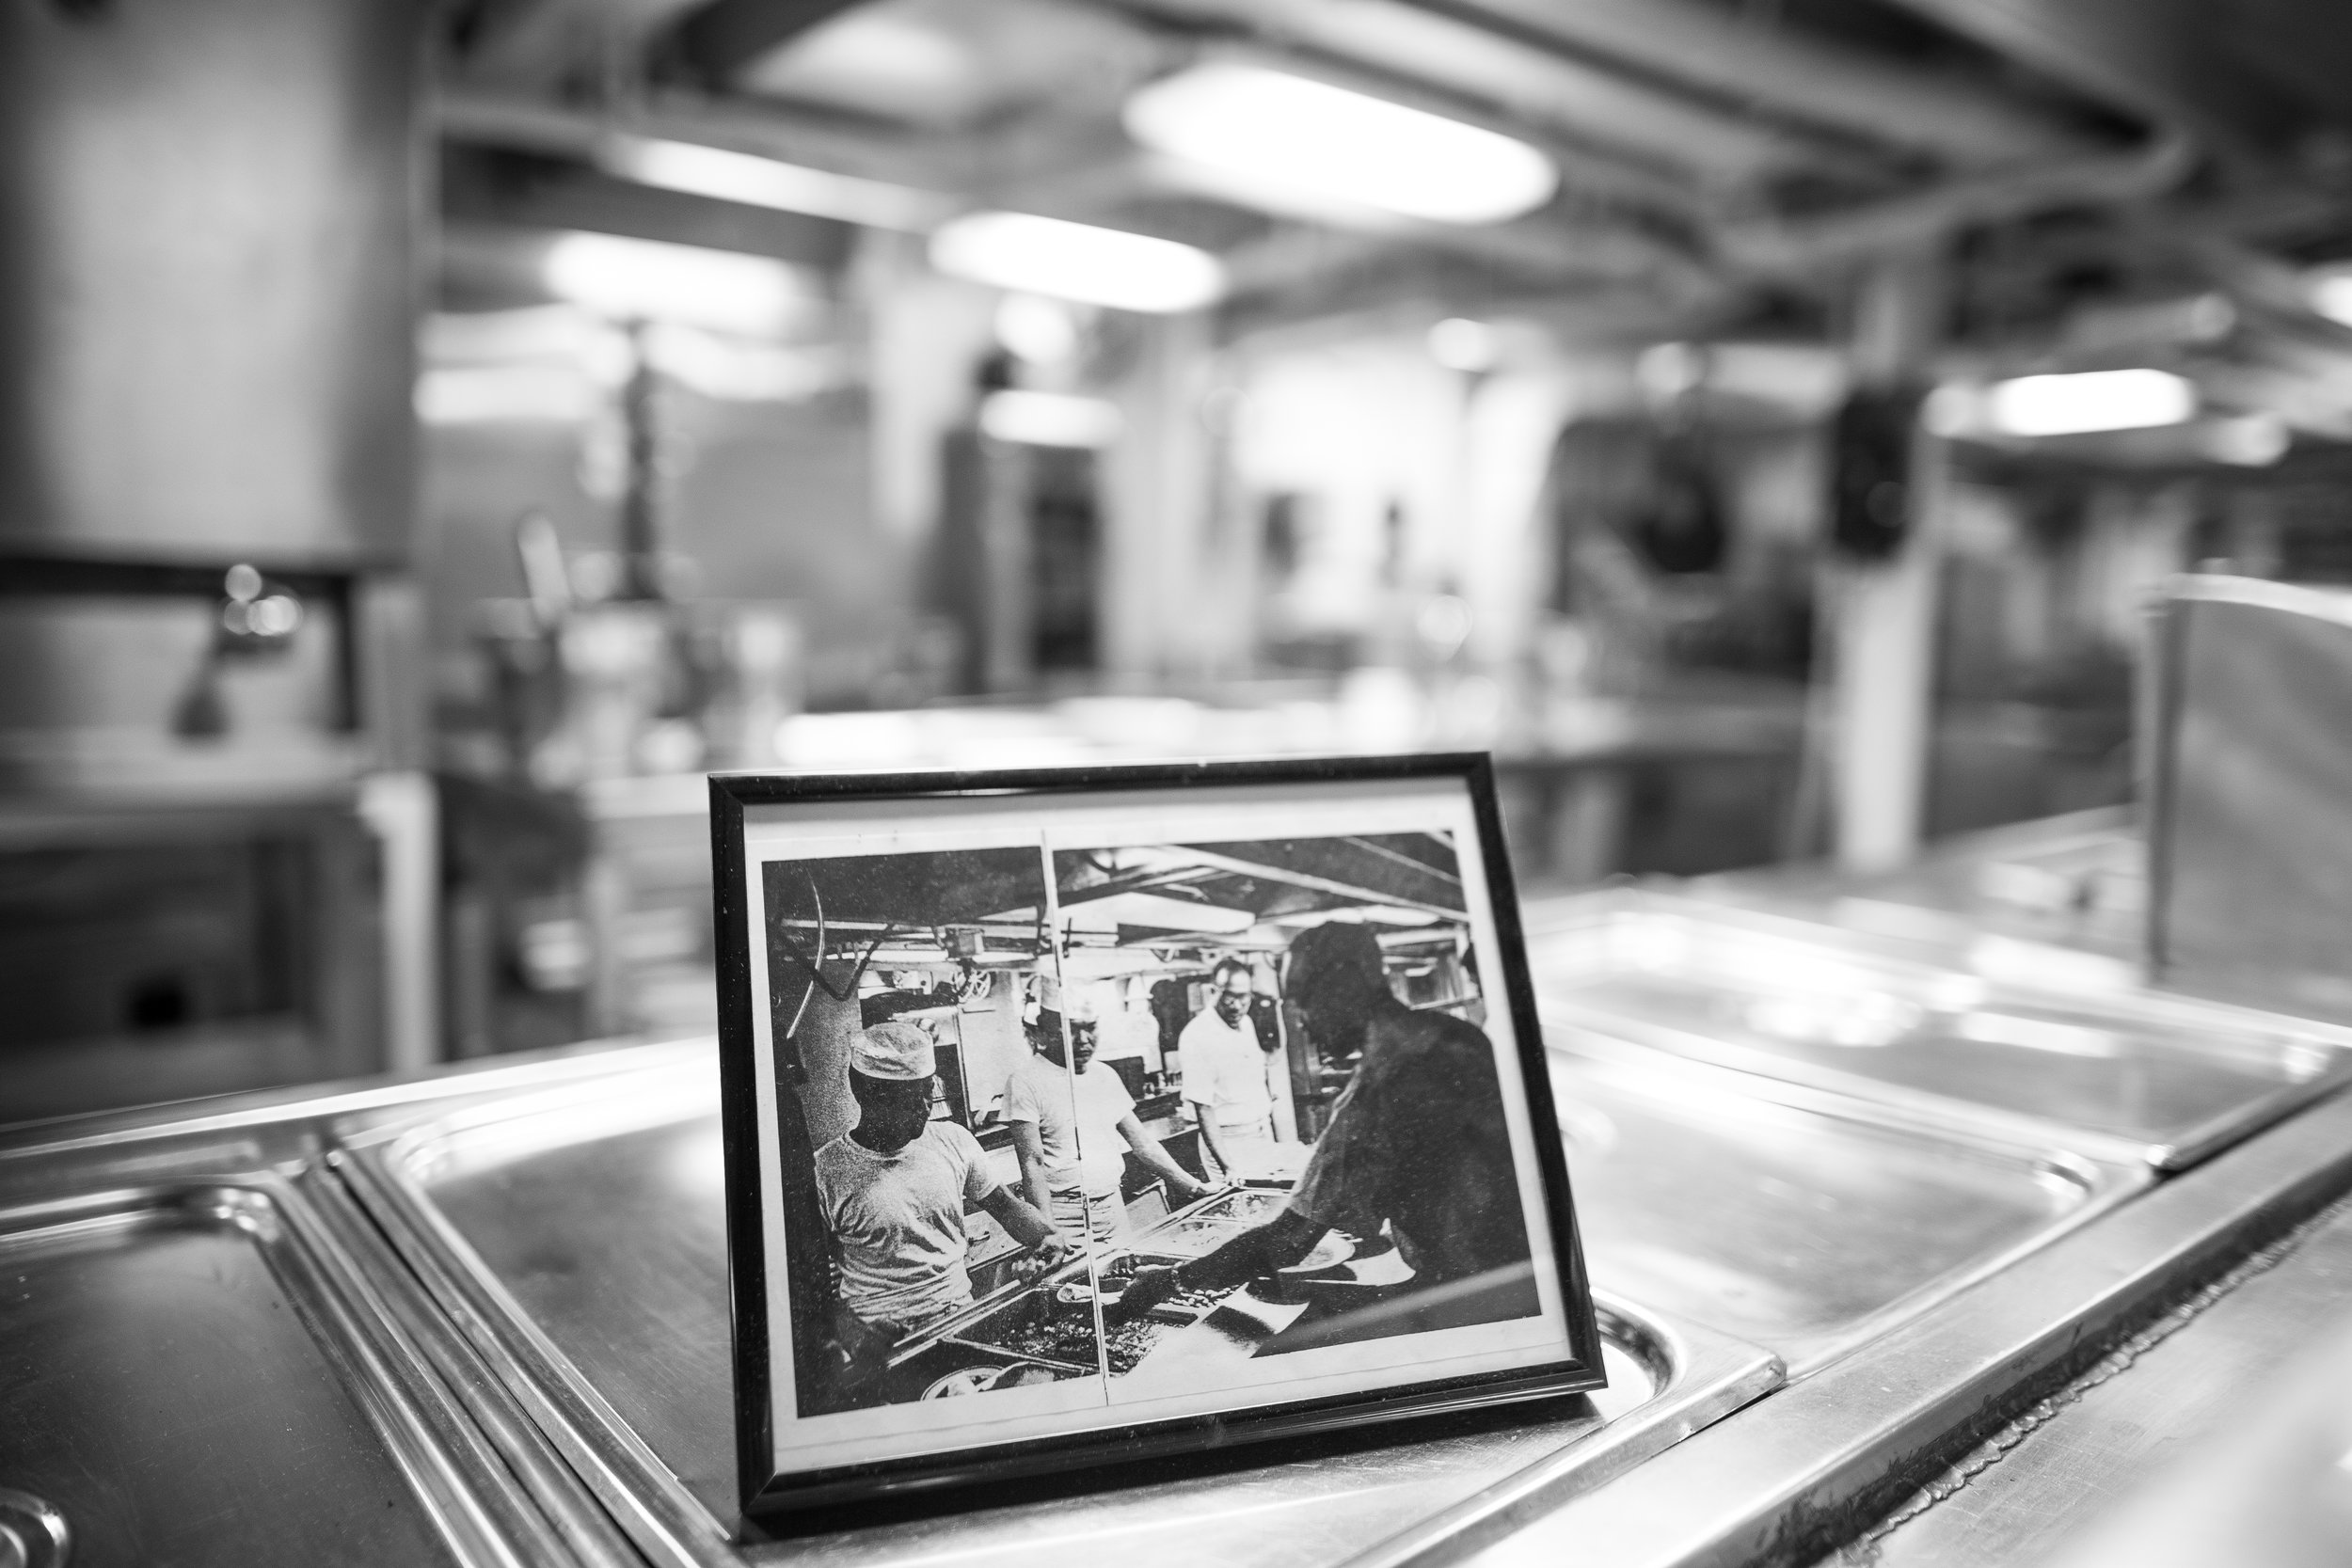 Not sure how old this photo of sailors in the kitchen was but this was the same place it was taken in (it's hard to tell because of the blur, forgive me please).